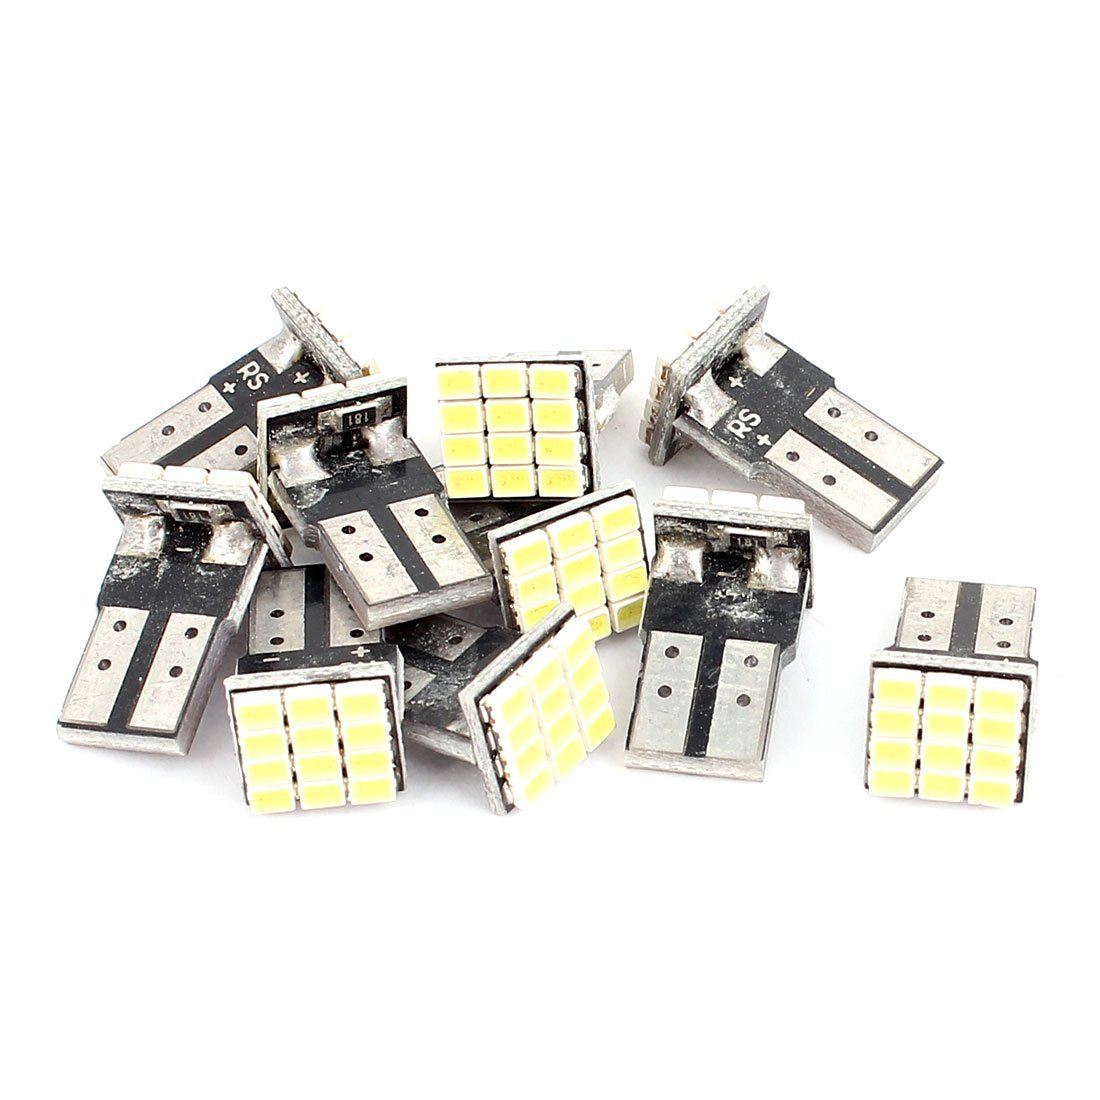 uxcell 10 Pcs T10 1210 12-SMD Wedge Type Single Side White LED Lamp Internal